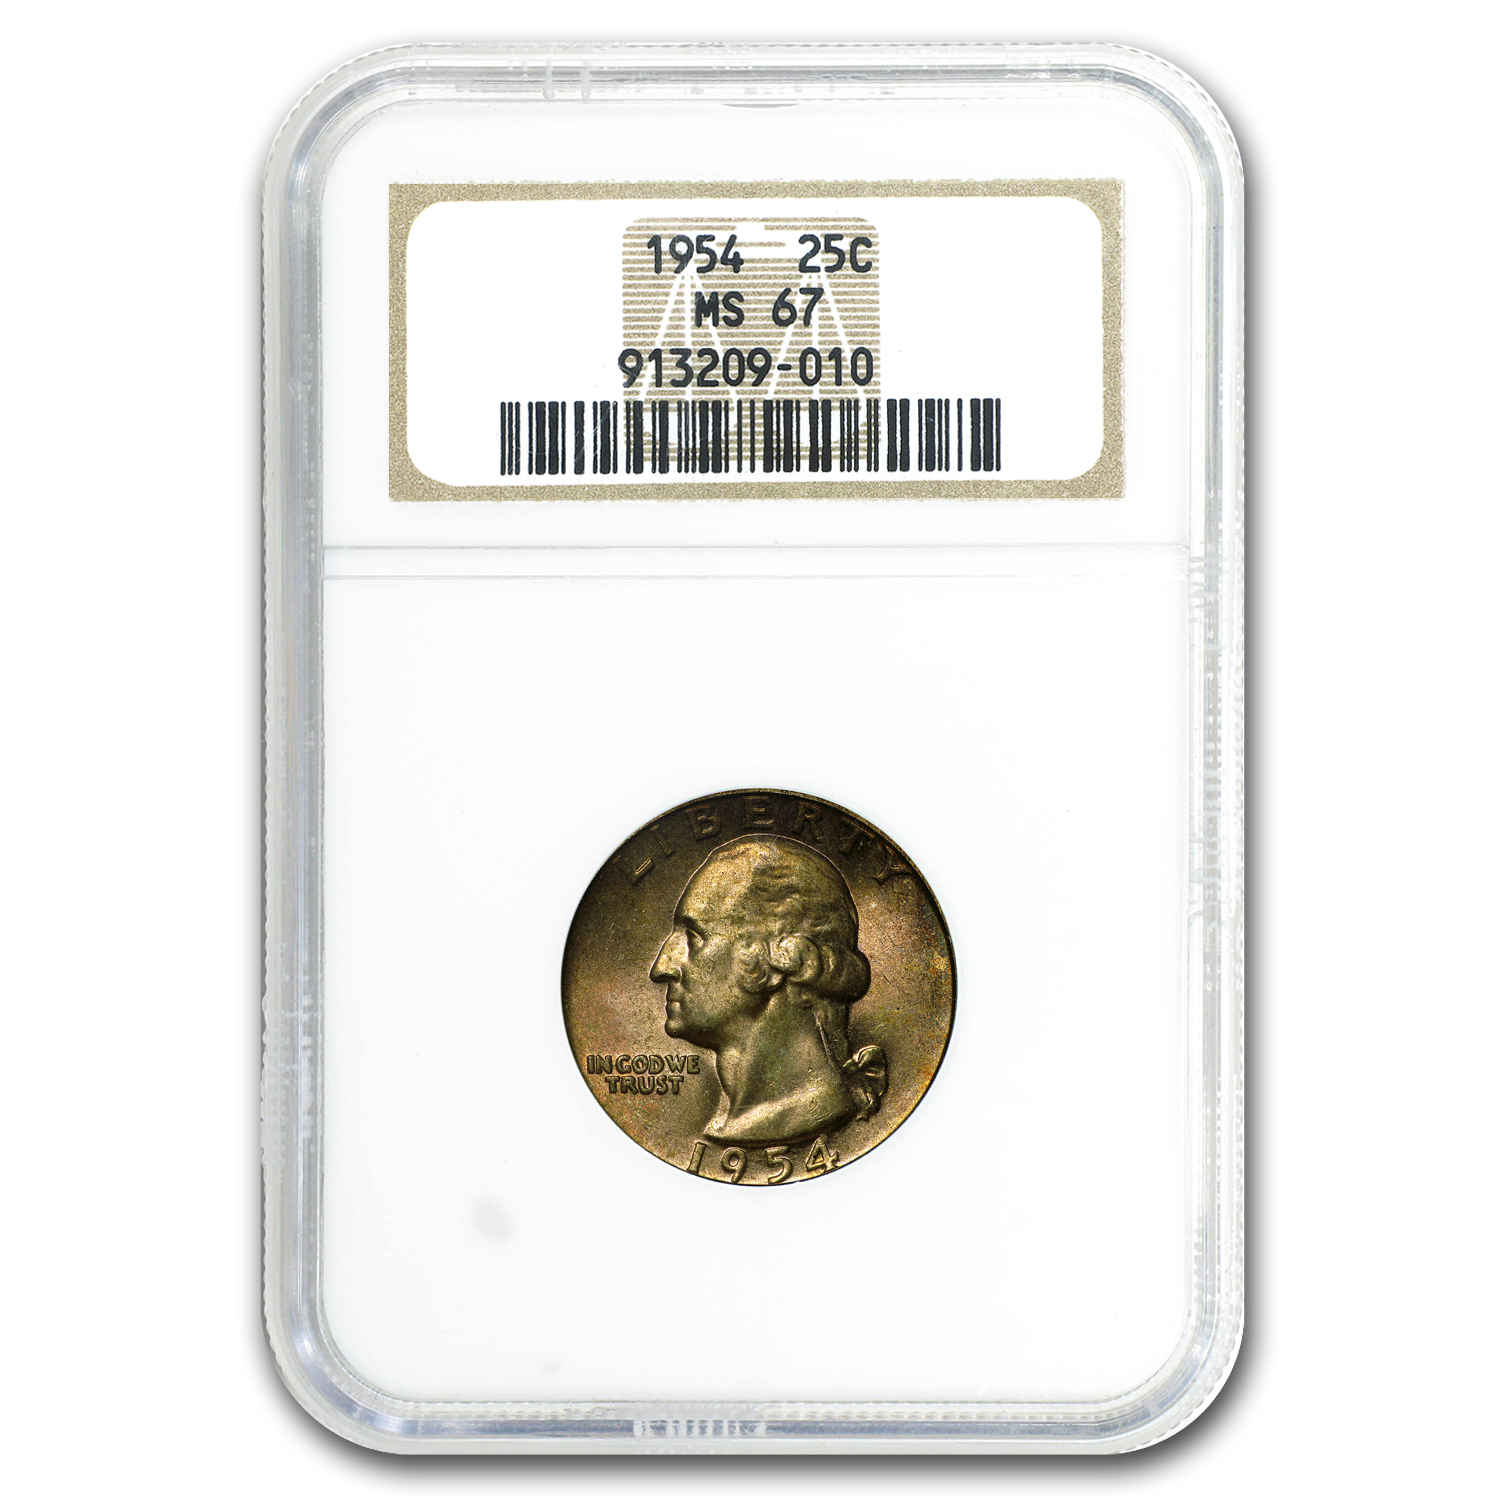 1954 Washington Quarter MS-67 NGC (Toned)